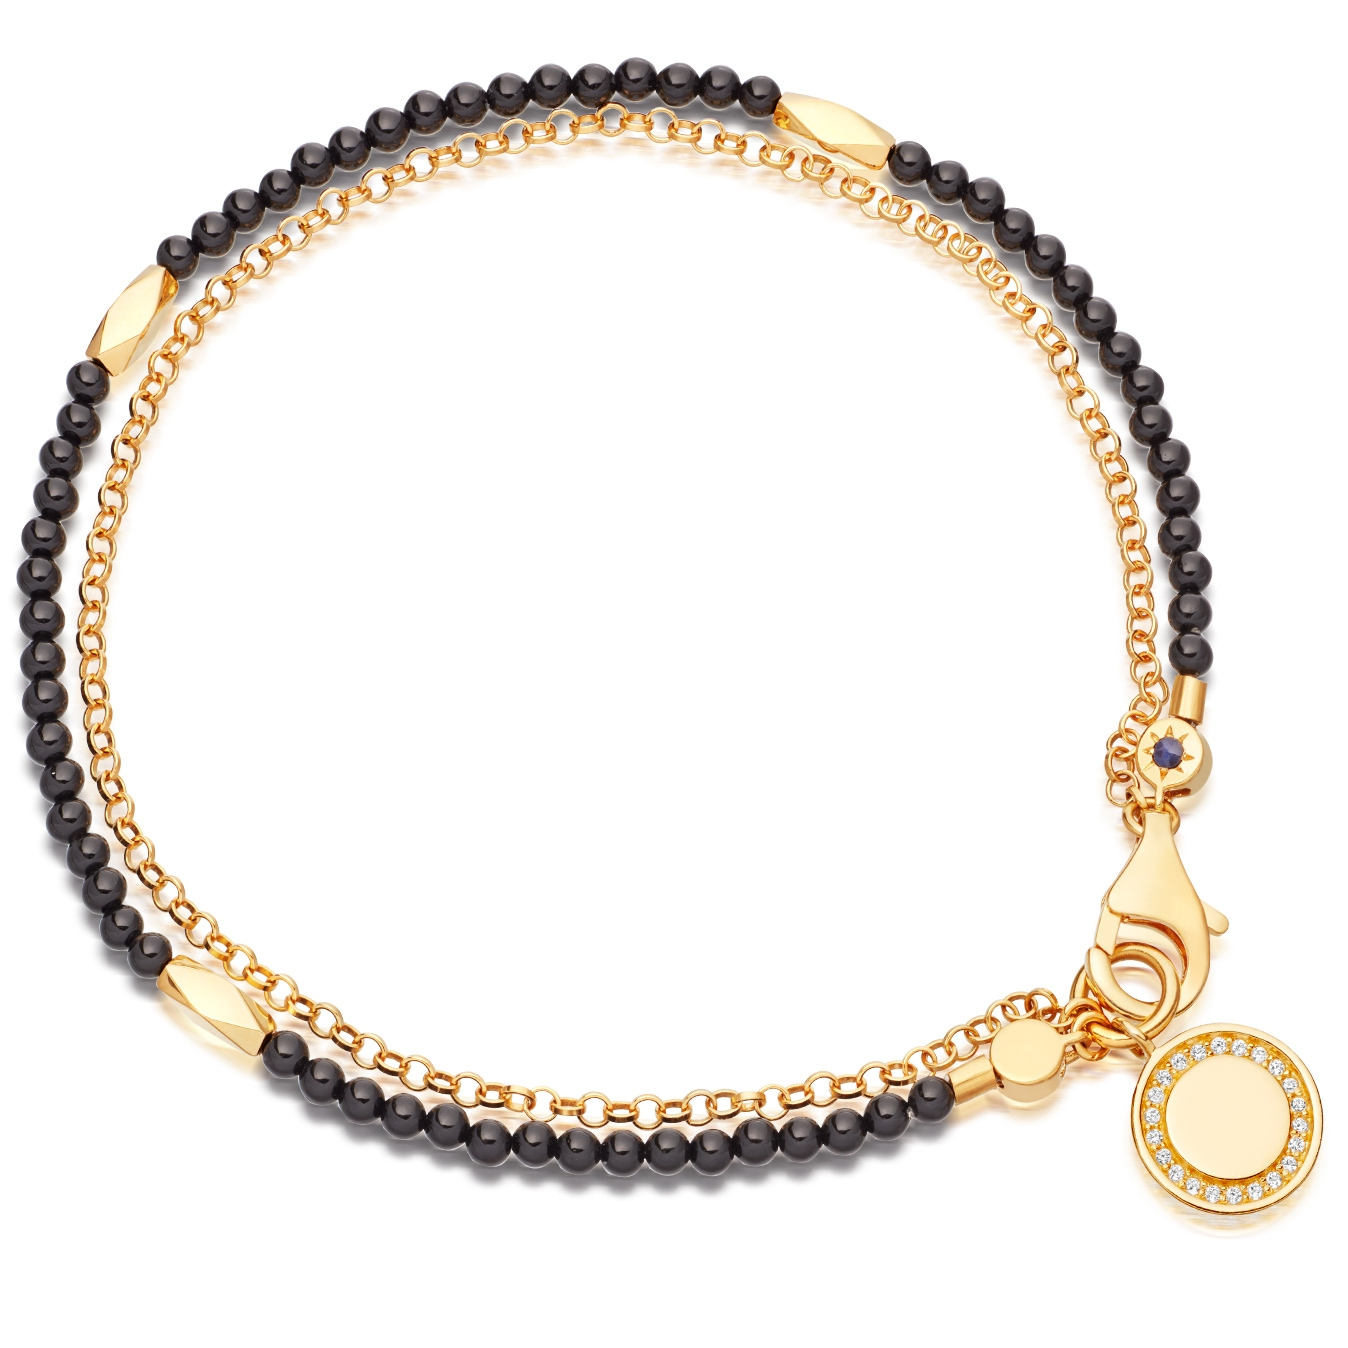 Black Onyx Faceted Nugget Biography Bracelet